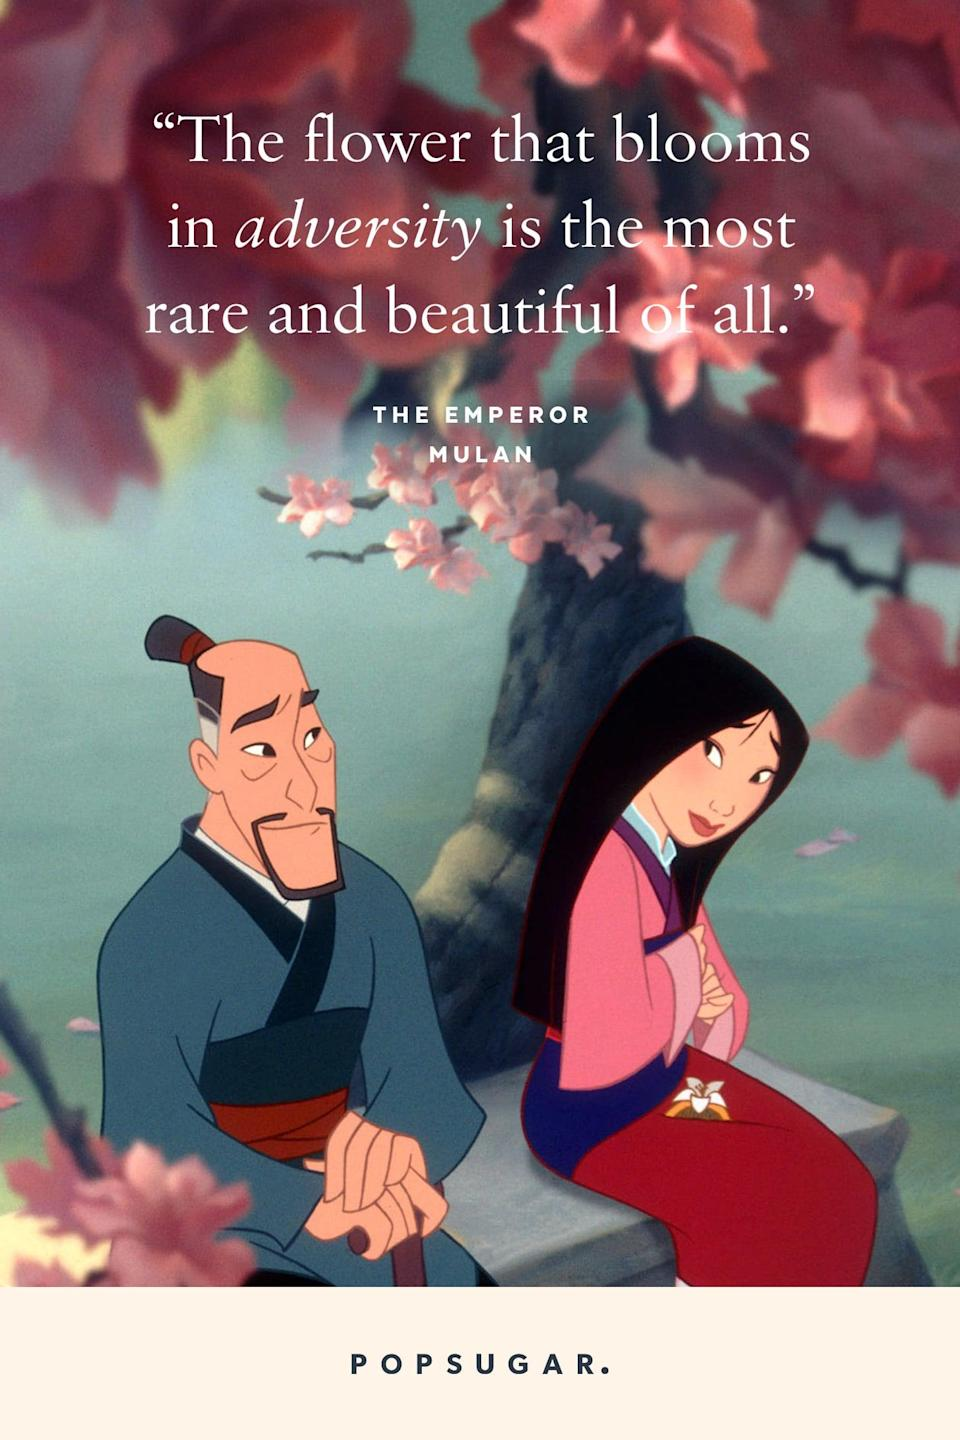 11 Emotional and Beautiful Disney Quotes That Are Guaranteed to